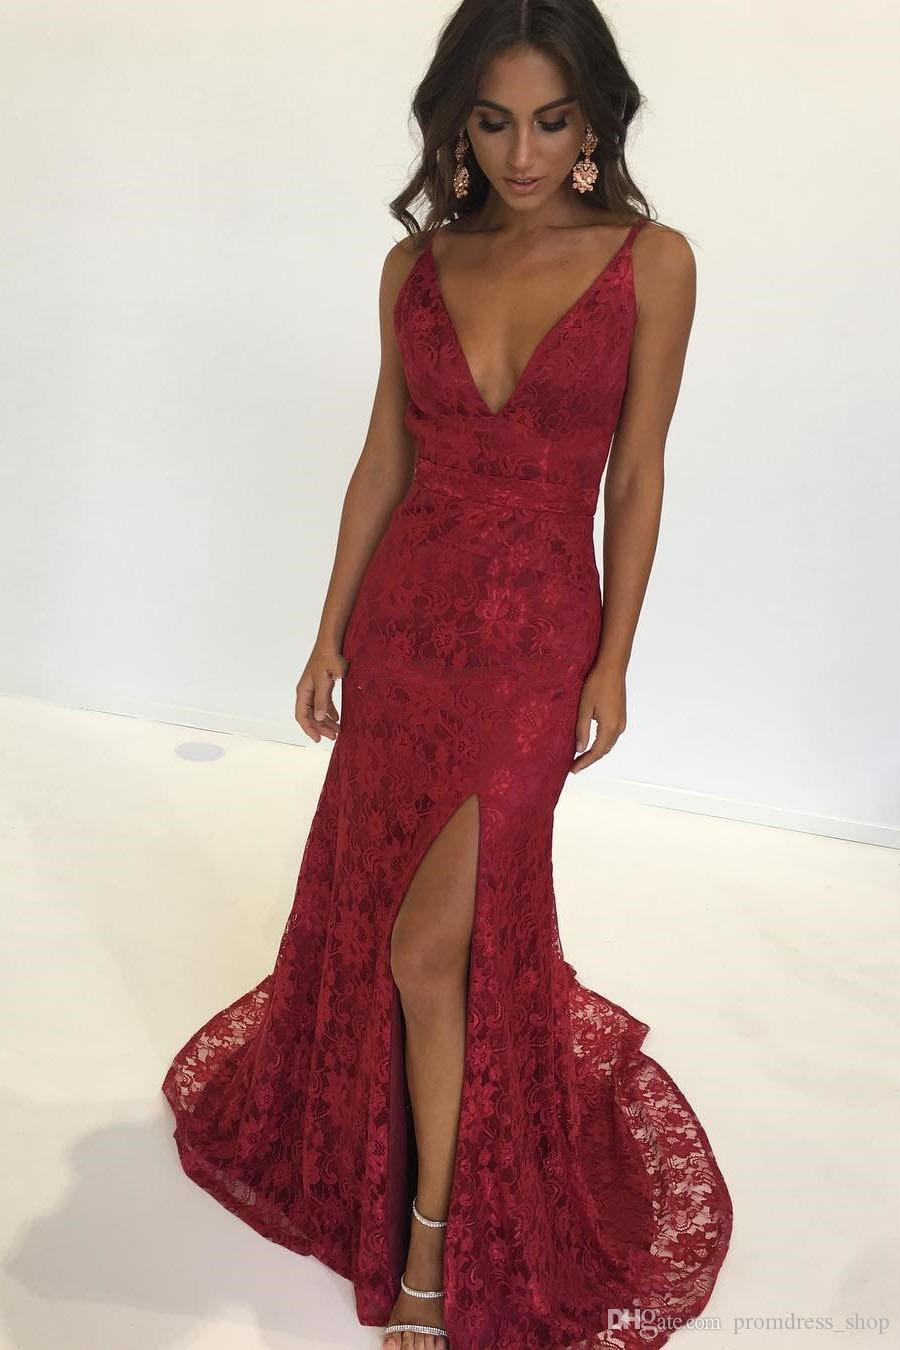 48684c3157a4d Sexy Red Lace Prom Dresses 2019 Deep V Neck Spaghetti Straps High Split  Backless Evening Dresses Mermaid Evening Gowns Sweep Train Prom Dress Under  100 Prom ...